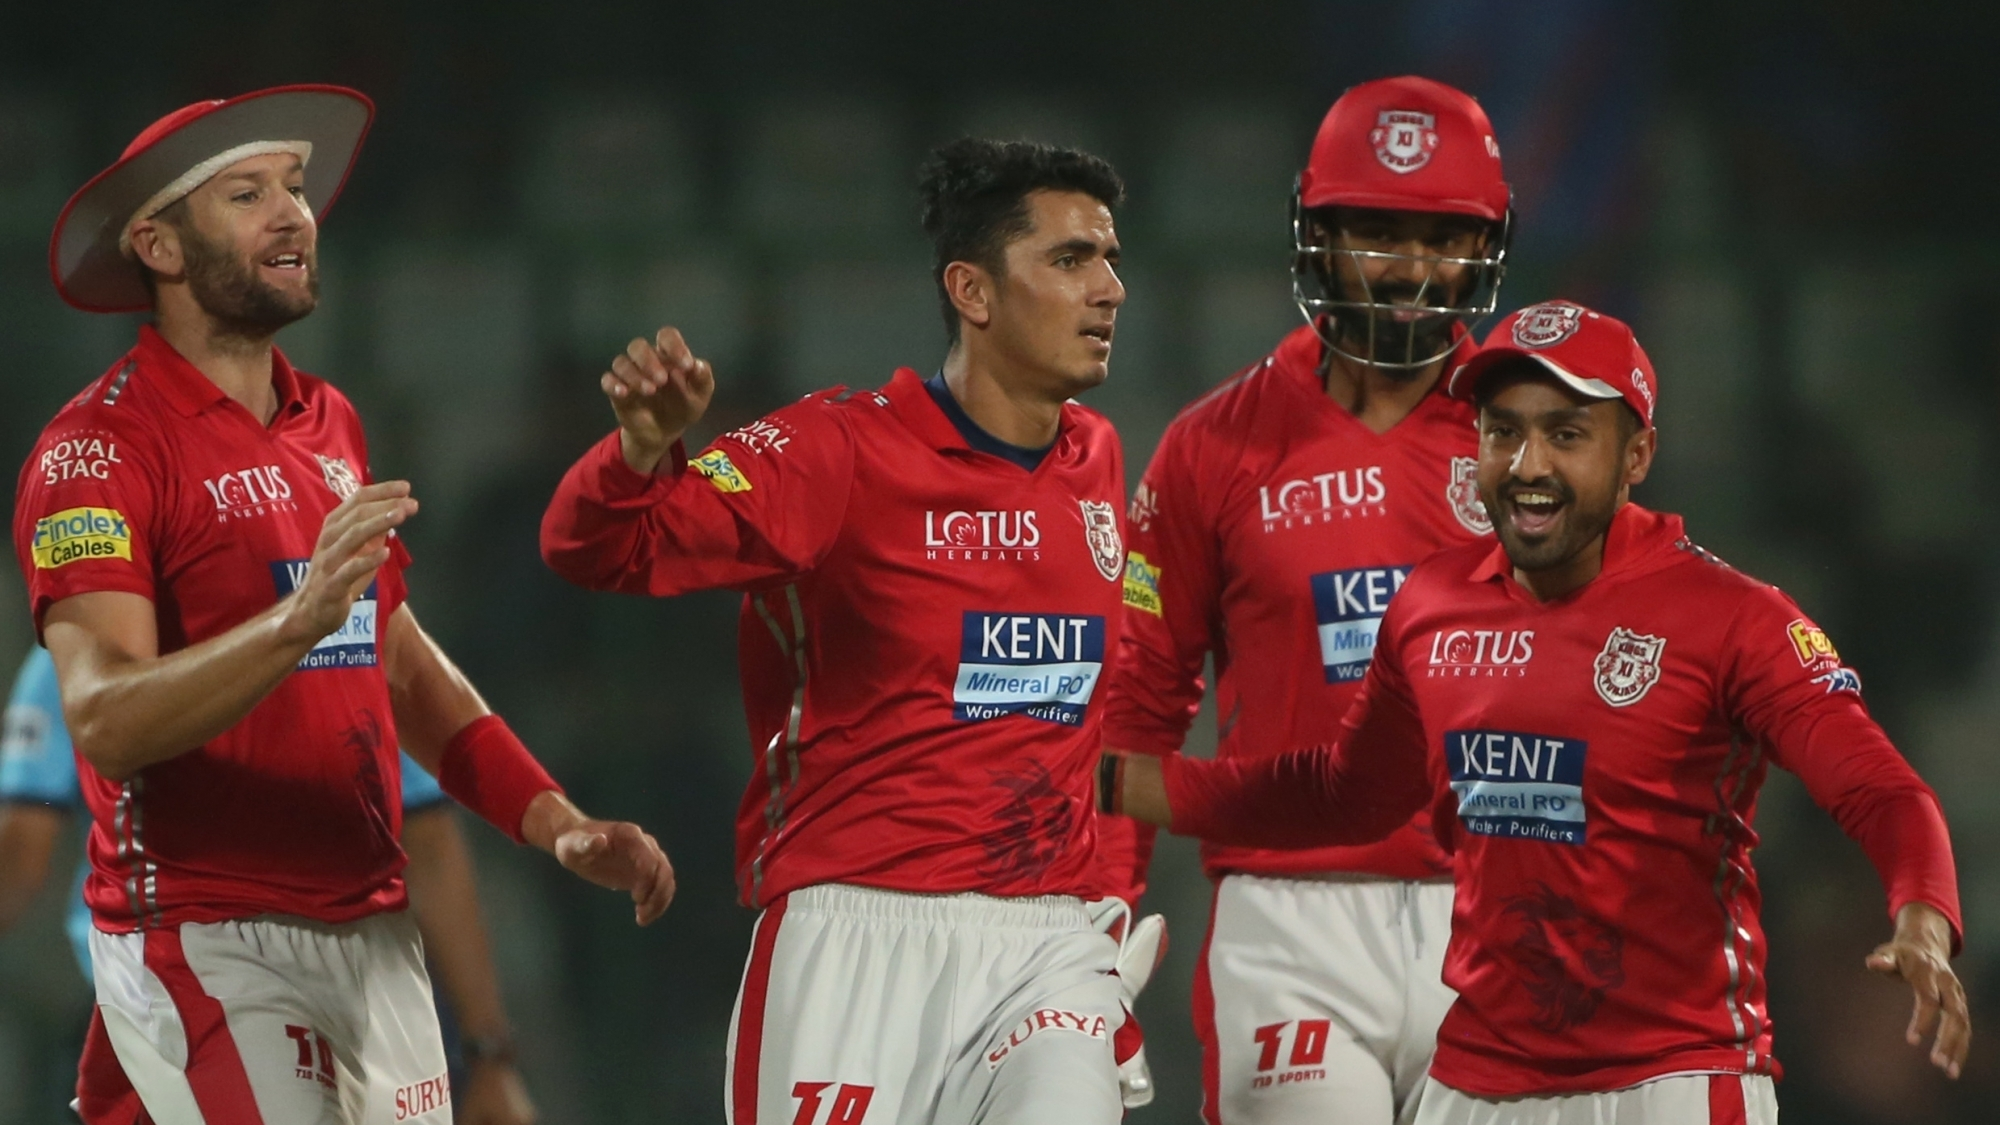 IPL 2018: KXIP v RR – Mujeeb Ur Rahman's dream spell restricts Rajasthan Royals to a subpar total of 152